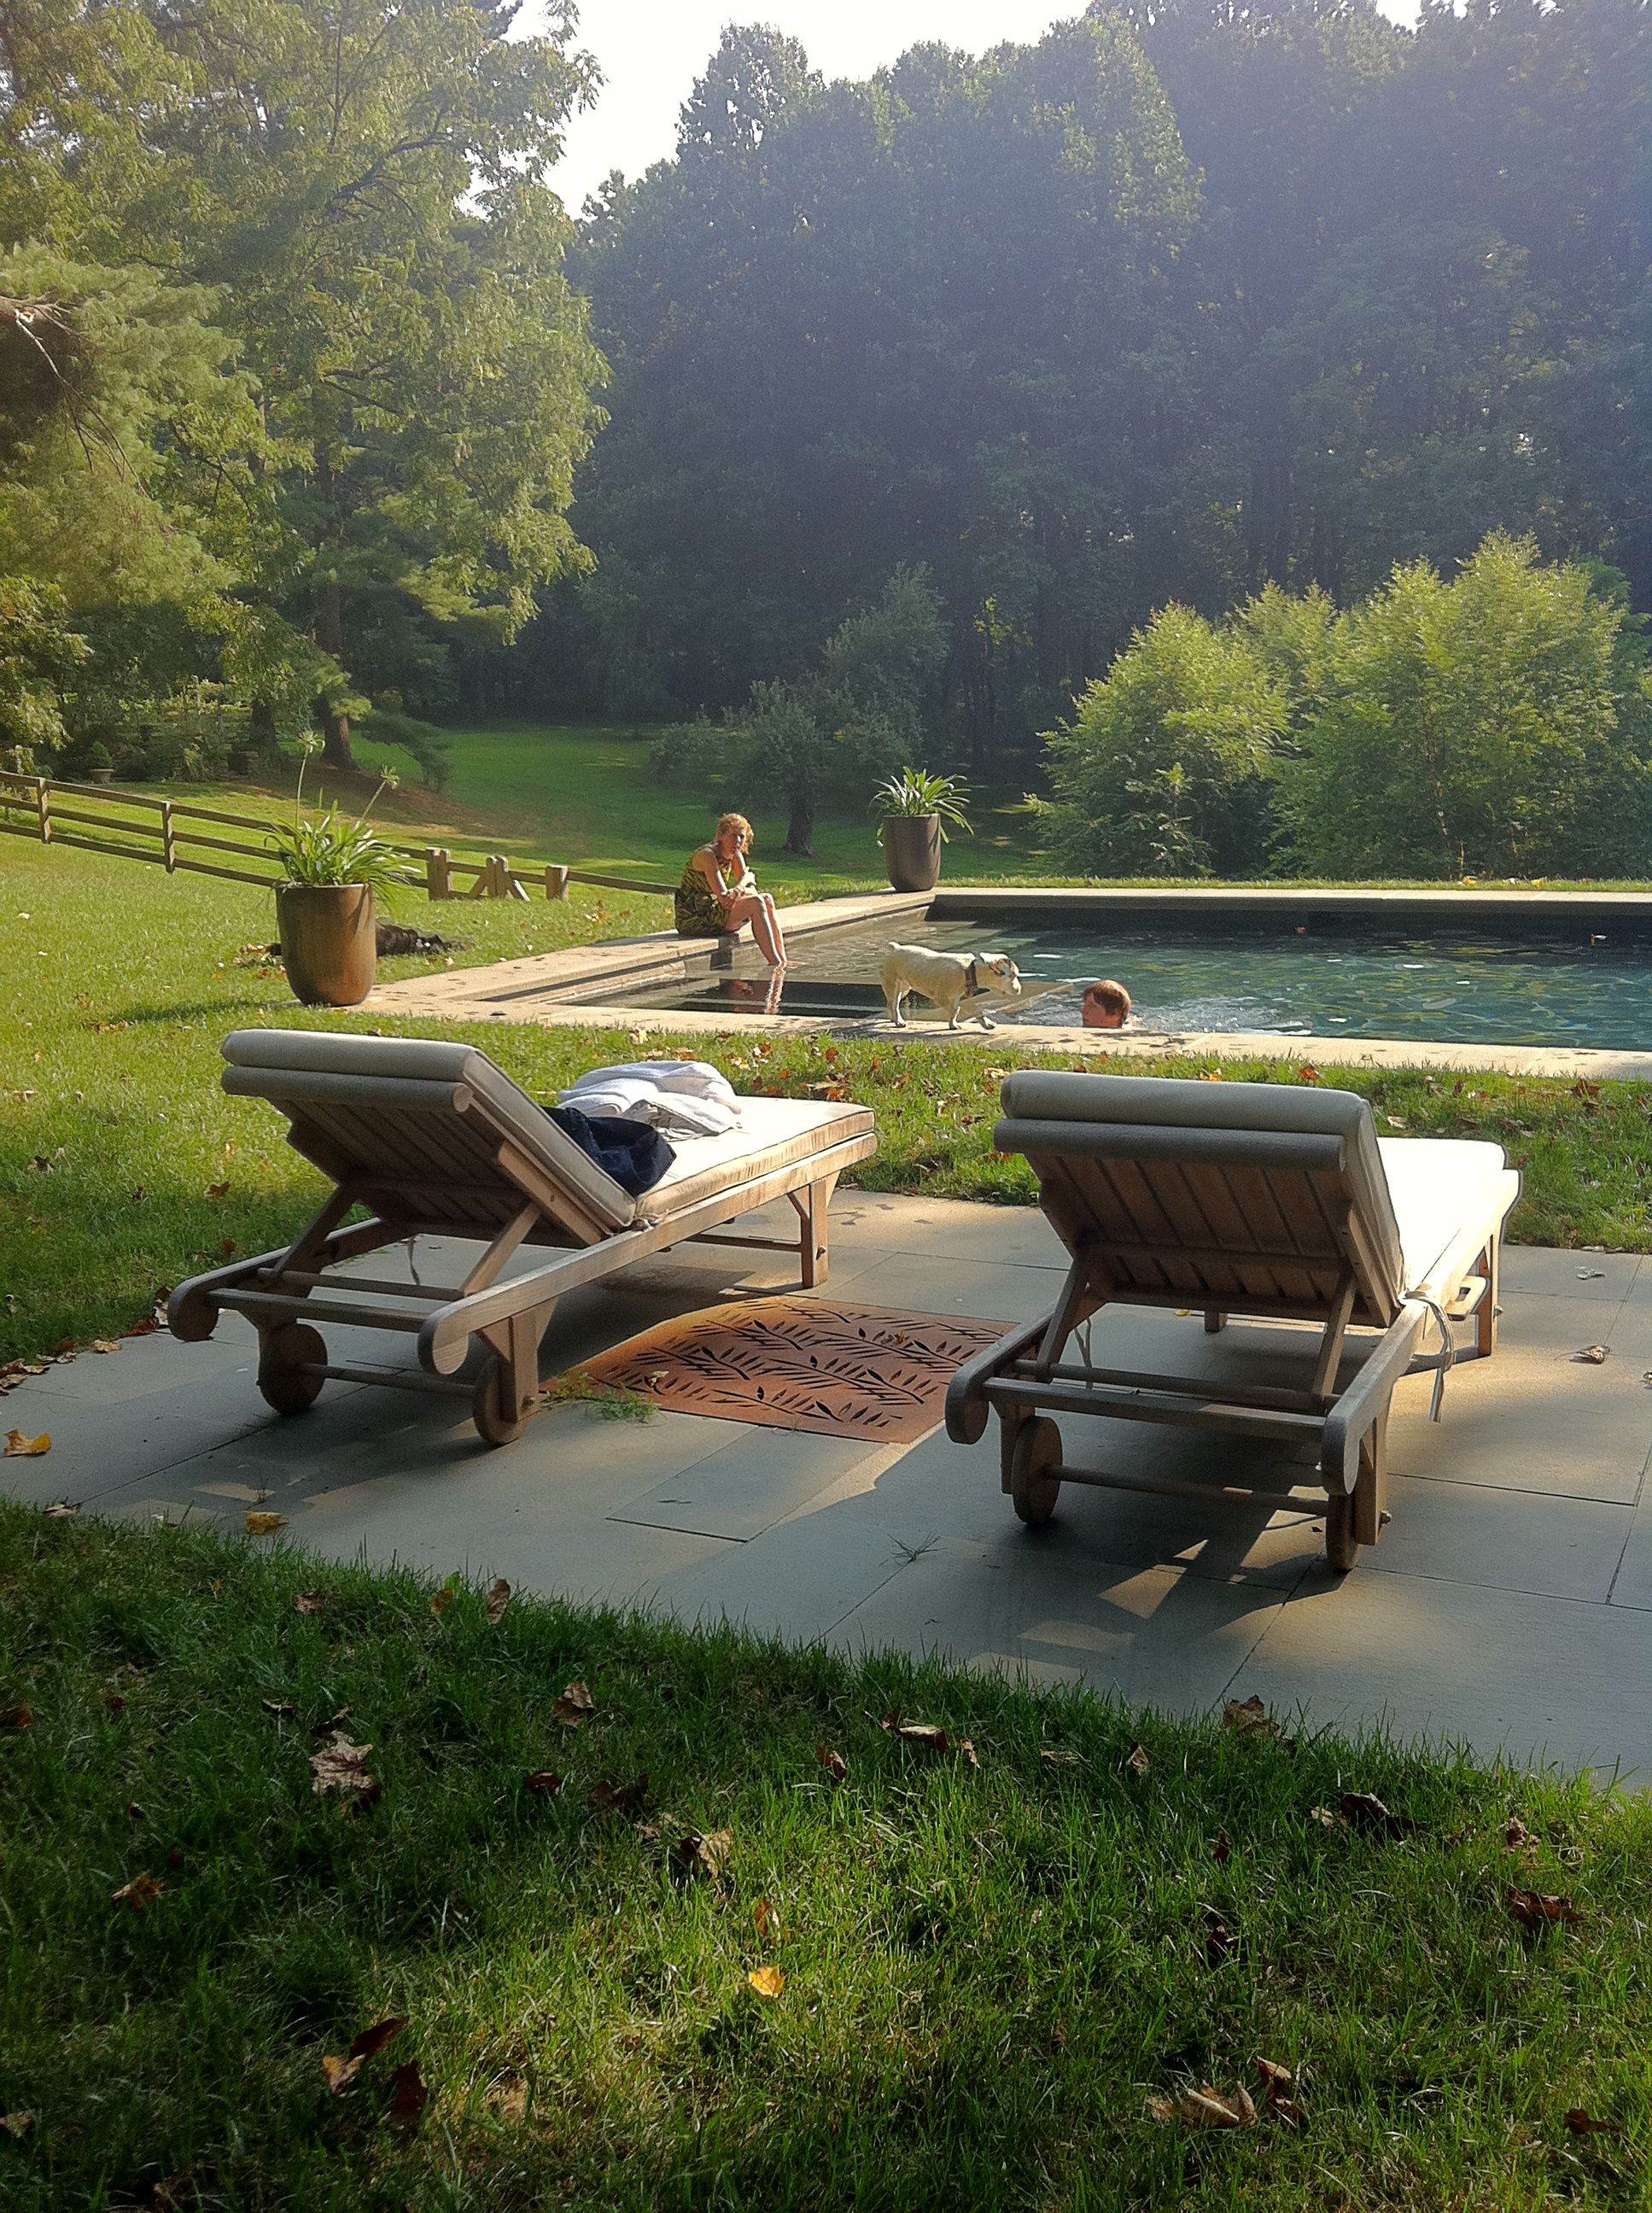 chez nous | Garden swimming pool, Outdoor, Country pool on My Garden Outdoor Living id=32638